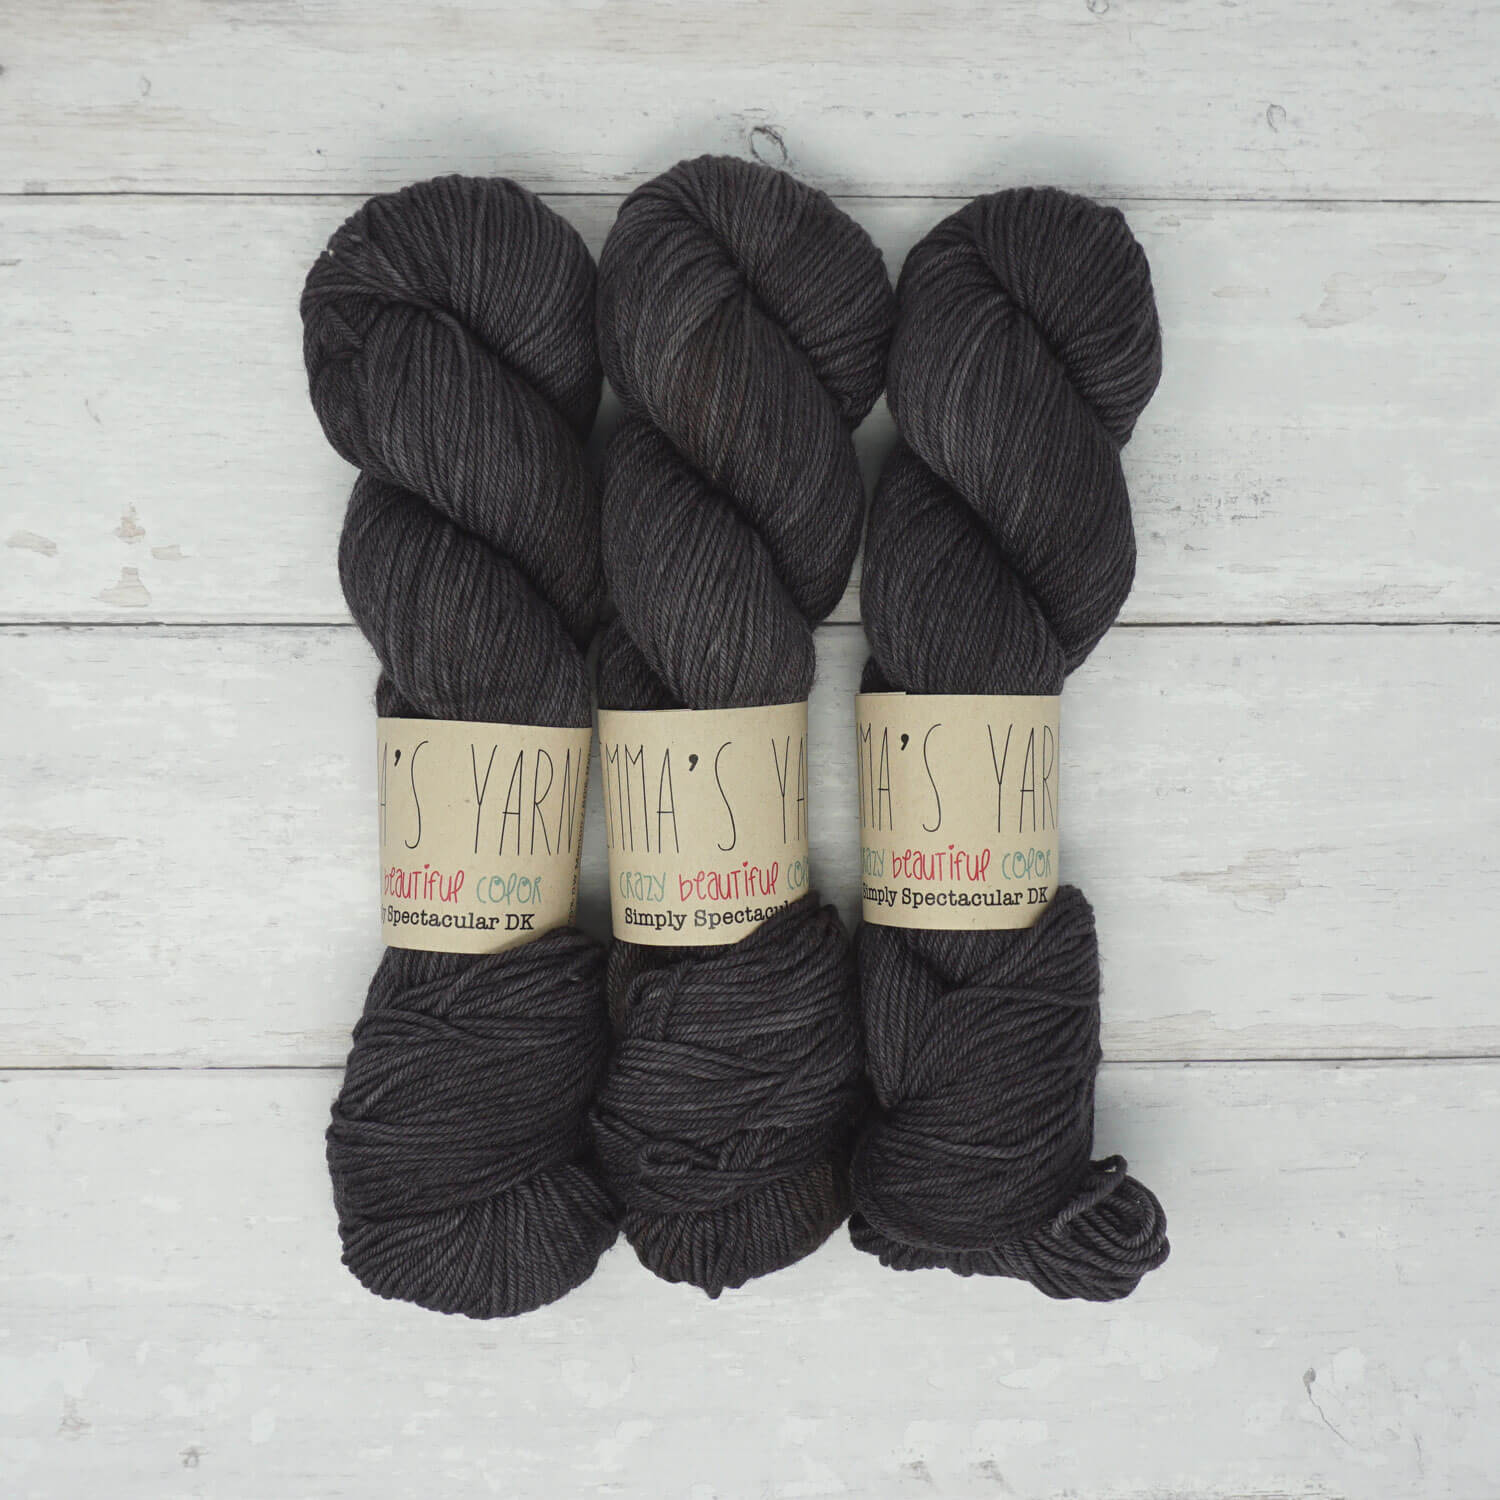 Emma's Yarn - Simply Spectacular DK Yarn - 100g - 20,000 Leagues | Yarn Worx